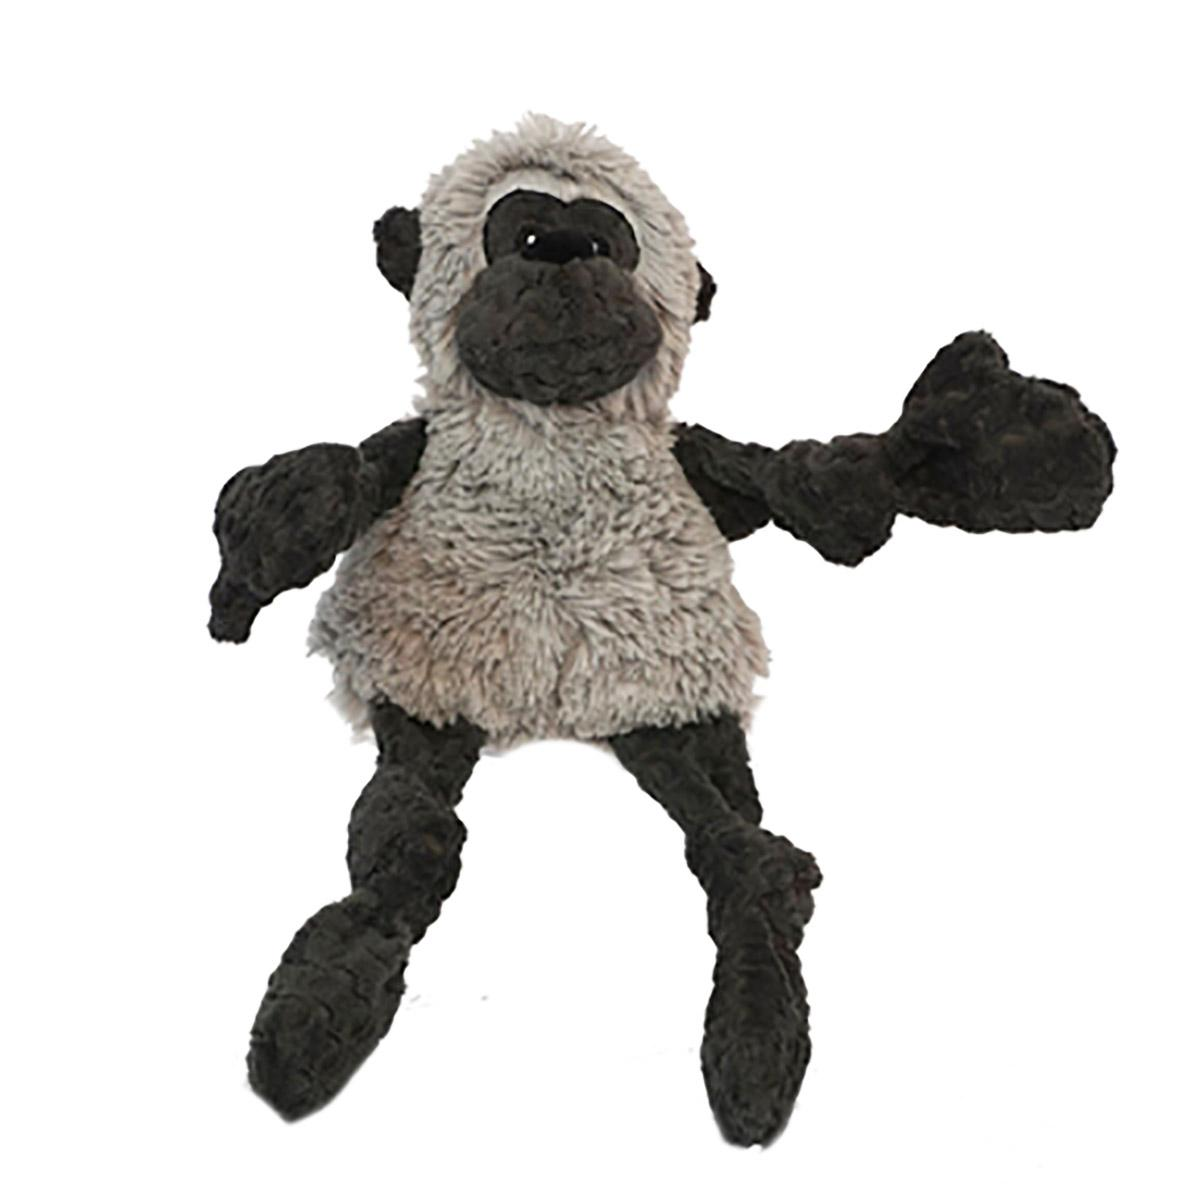 Plush Gorilla Dog Toy